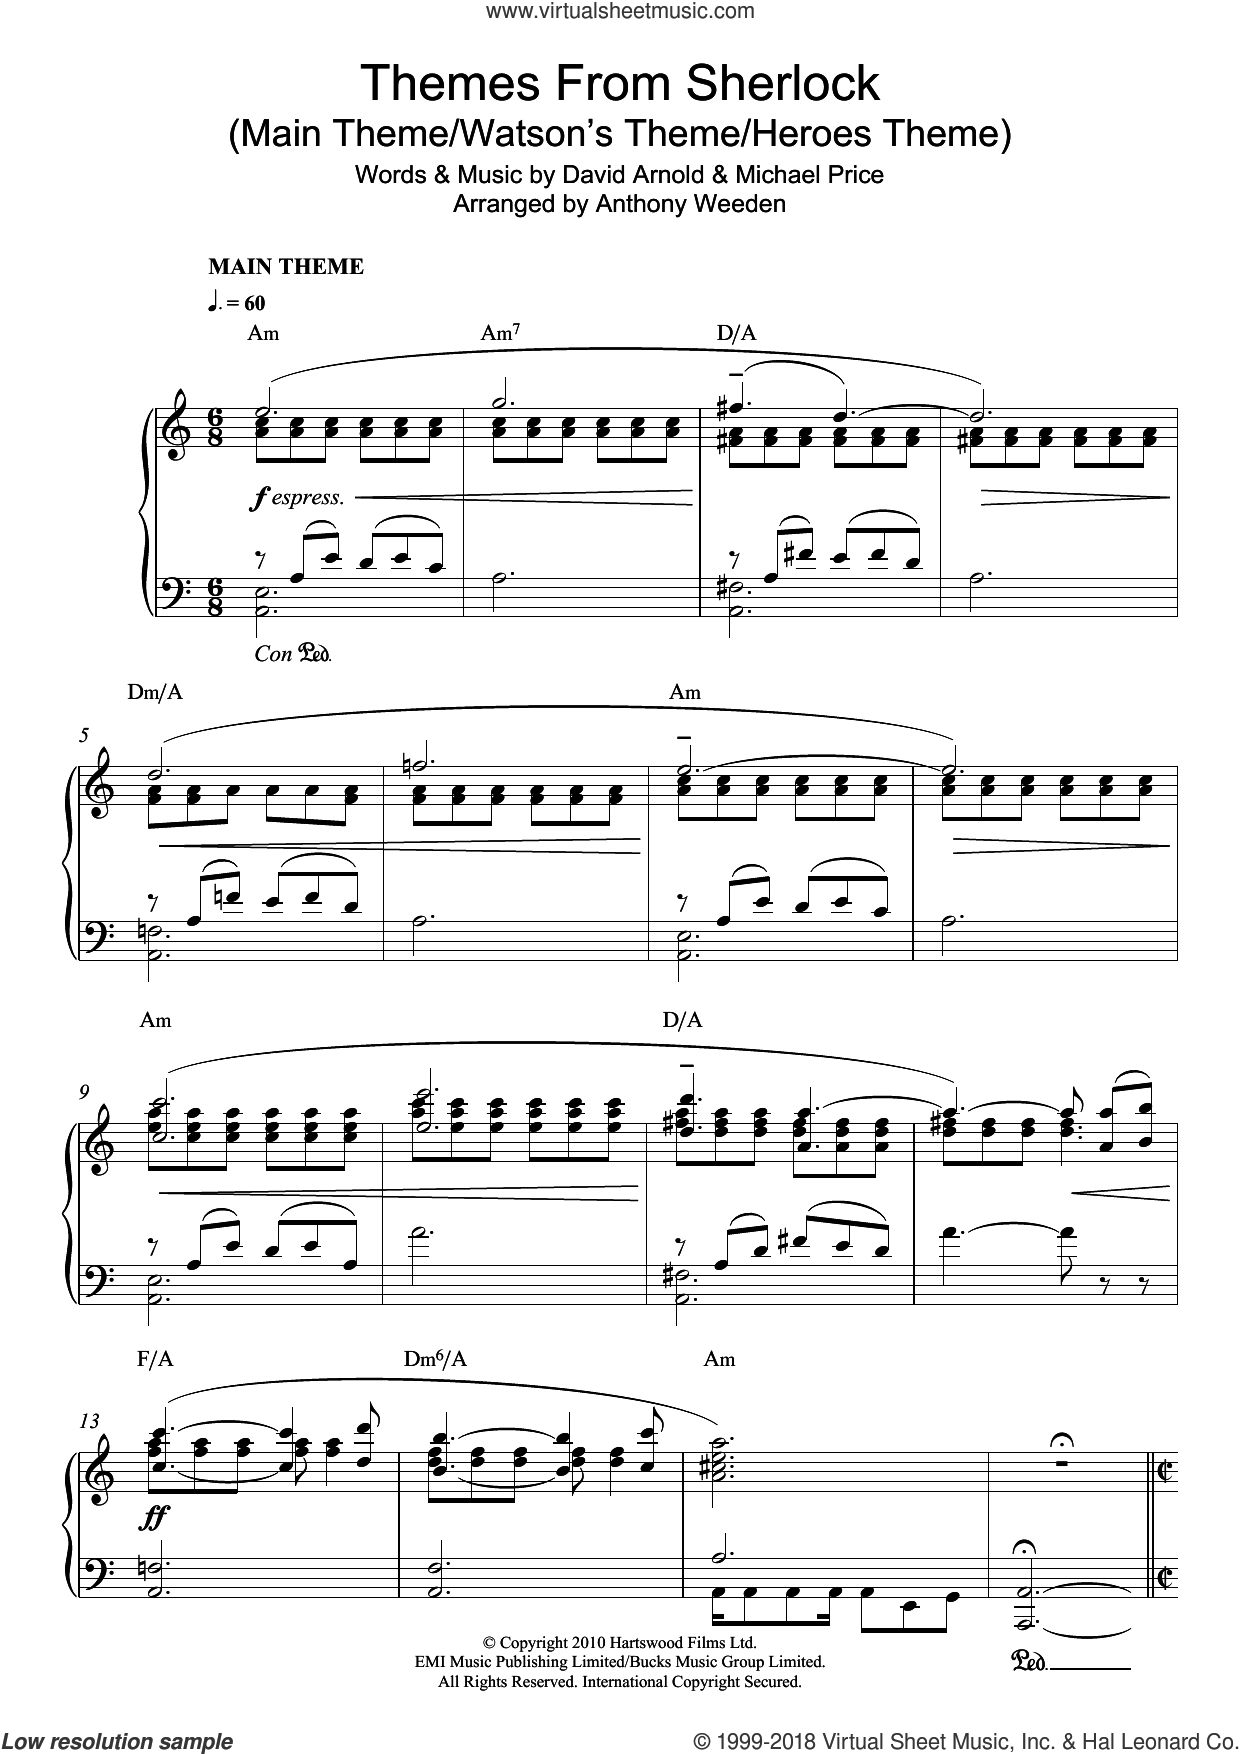 Themes From Sherlock (Main Theme/Watson's Theme/Heroes Theme) sheet music for piano solo by David Arnold